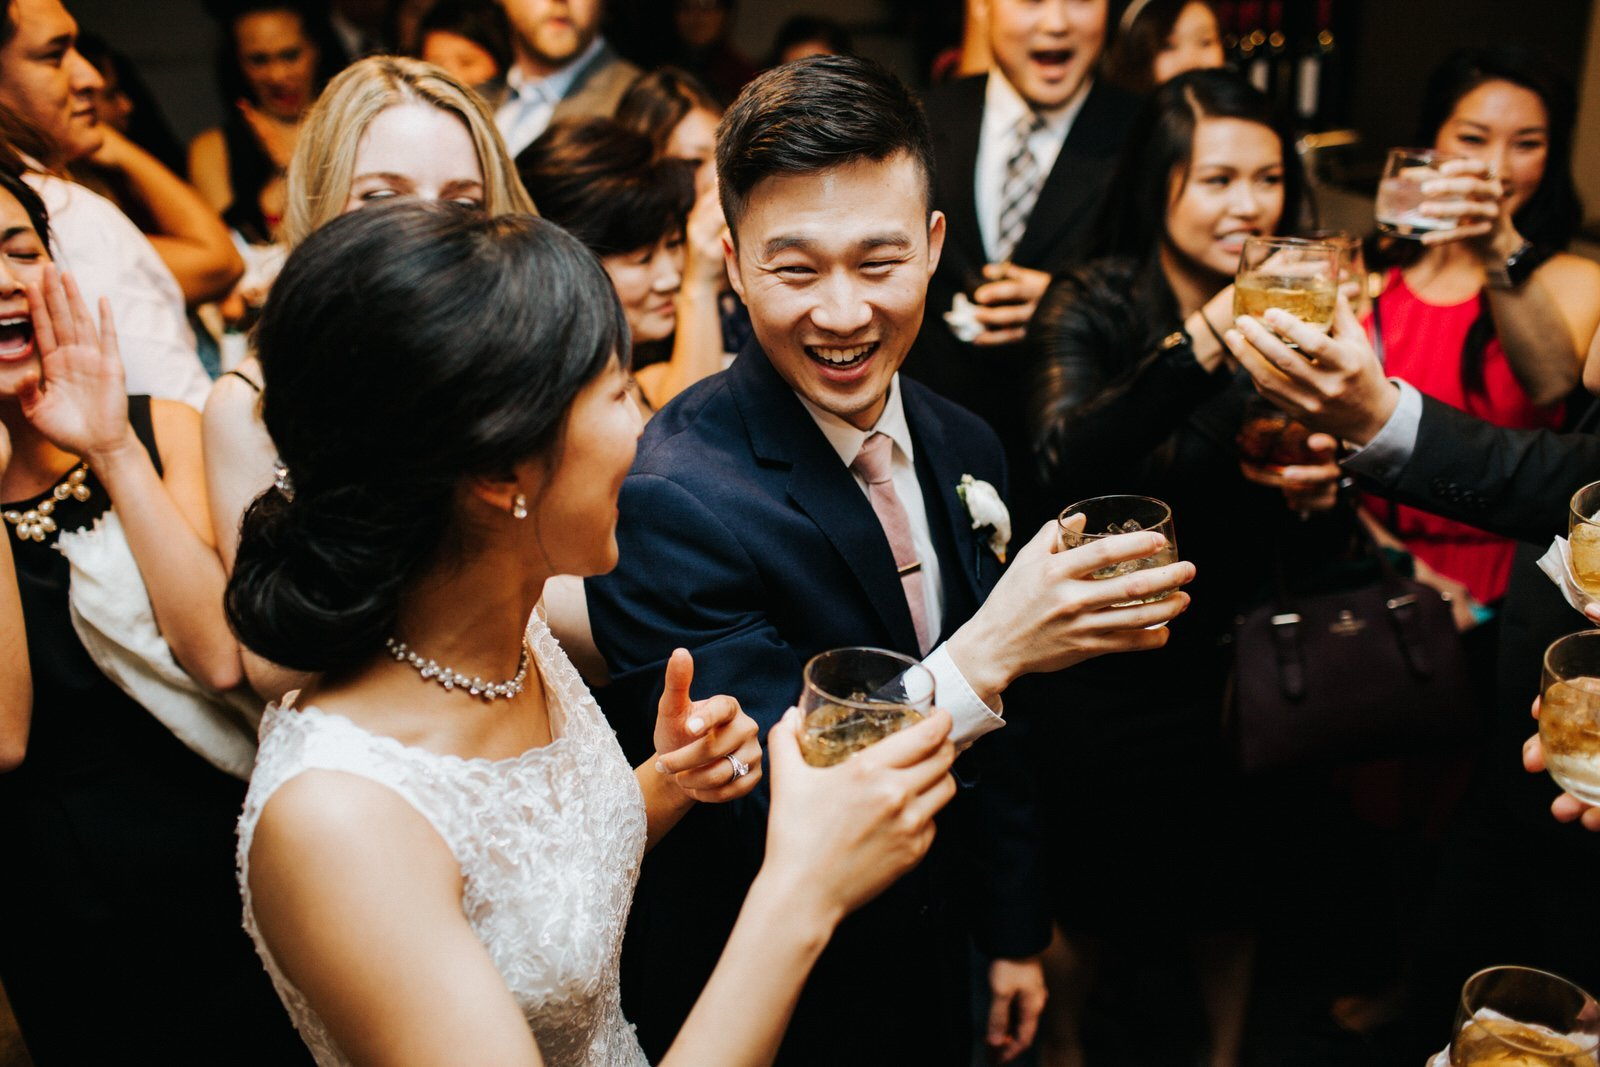 The couple drinks with their guests during the reception